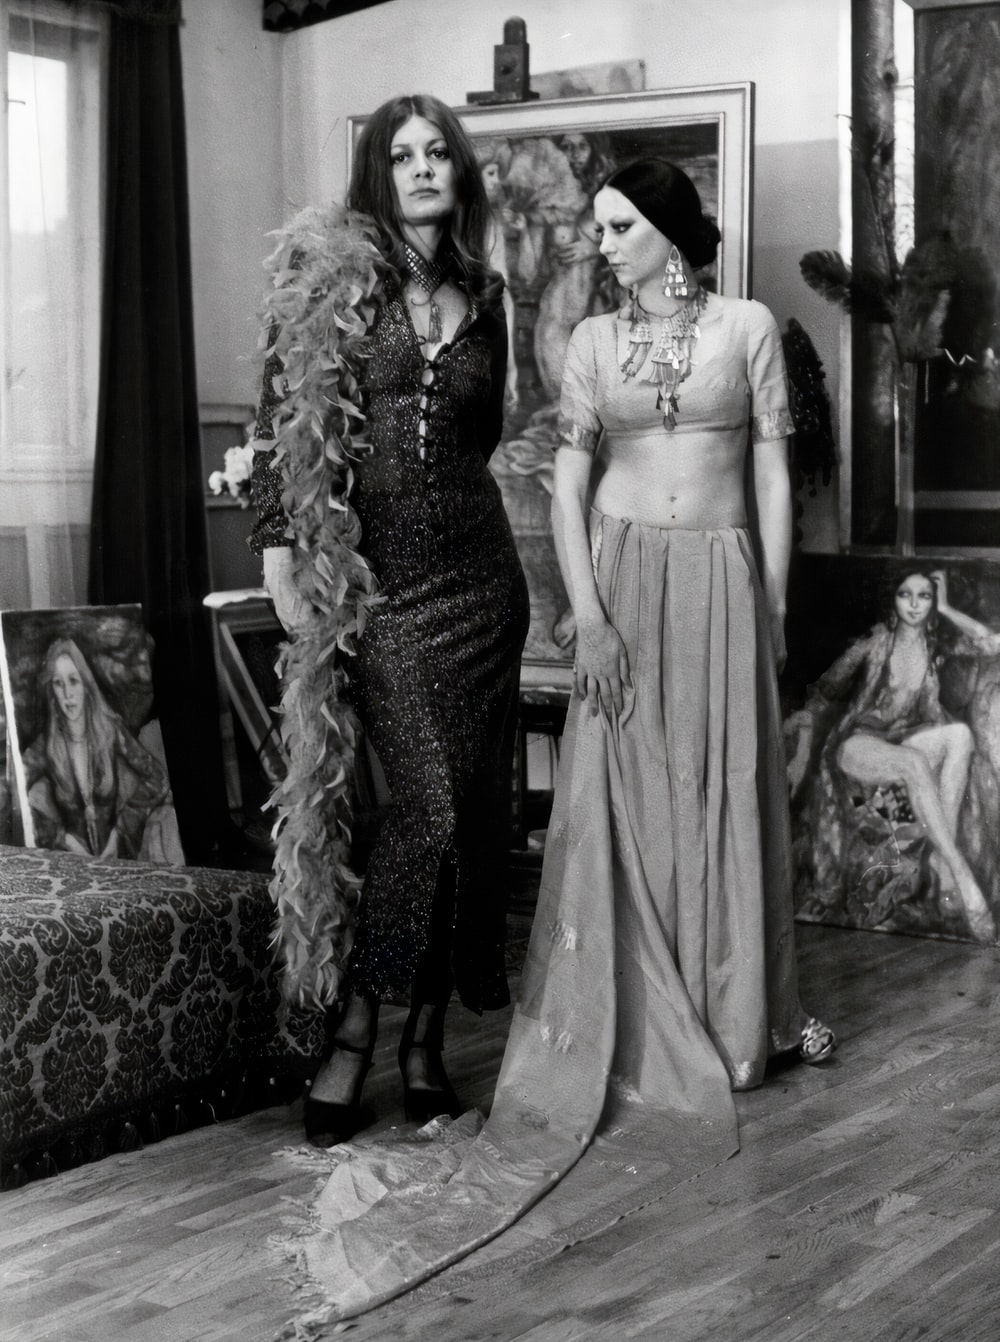 woman in black and white dress standing beside woman in black and white dress